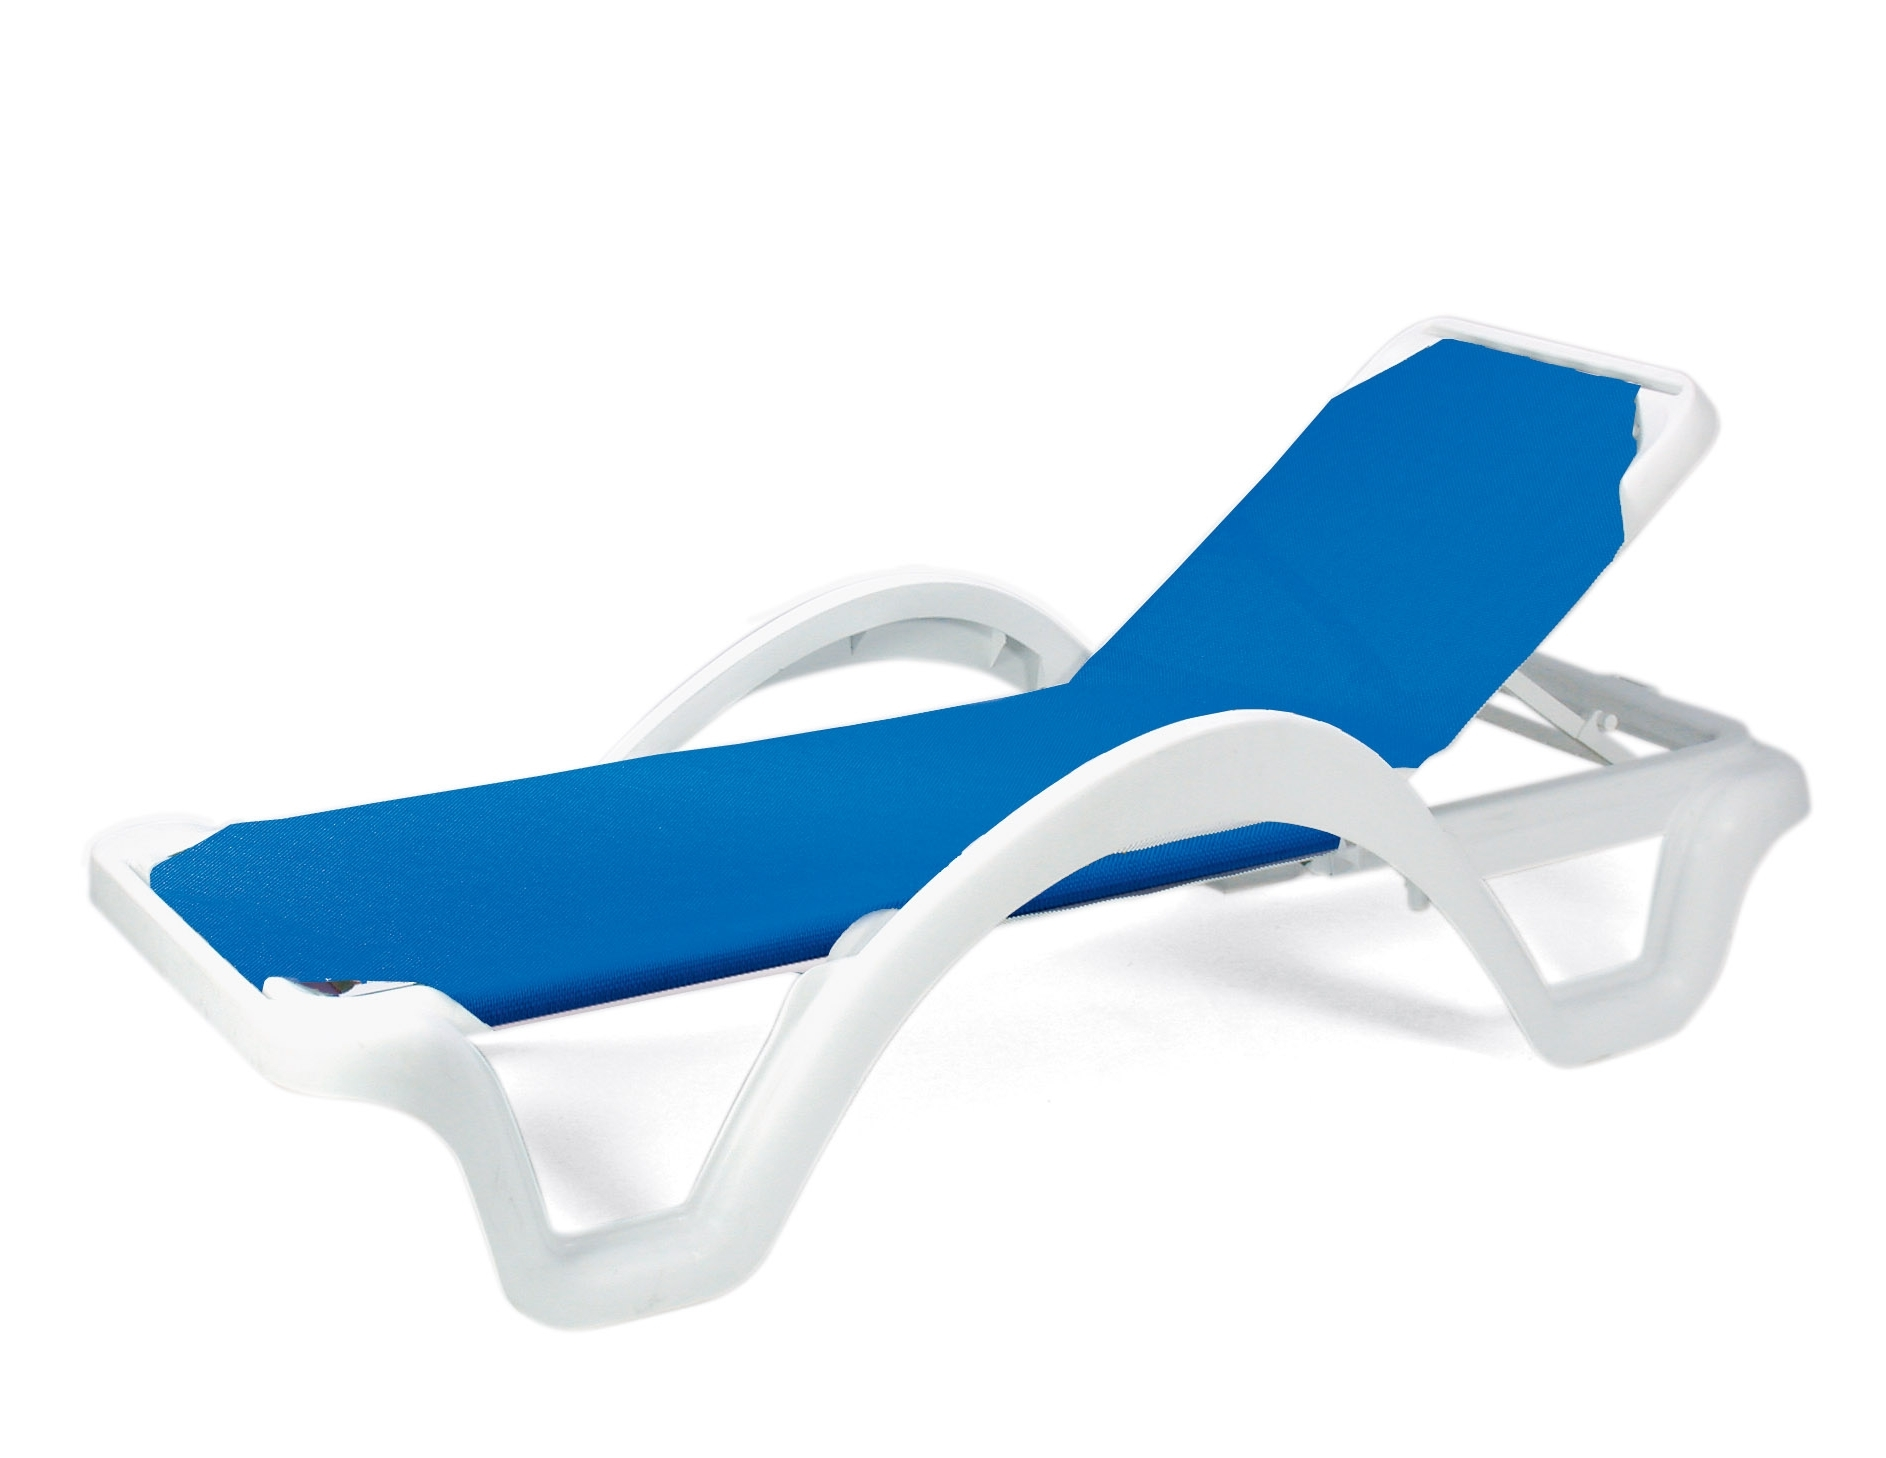 Commercial Grade Chaise Lounge Chairs Regarding Most Up To Date Grosfillex Chaise Lounge Chairs (View 4 of 15)